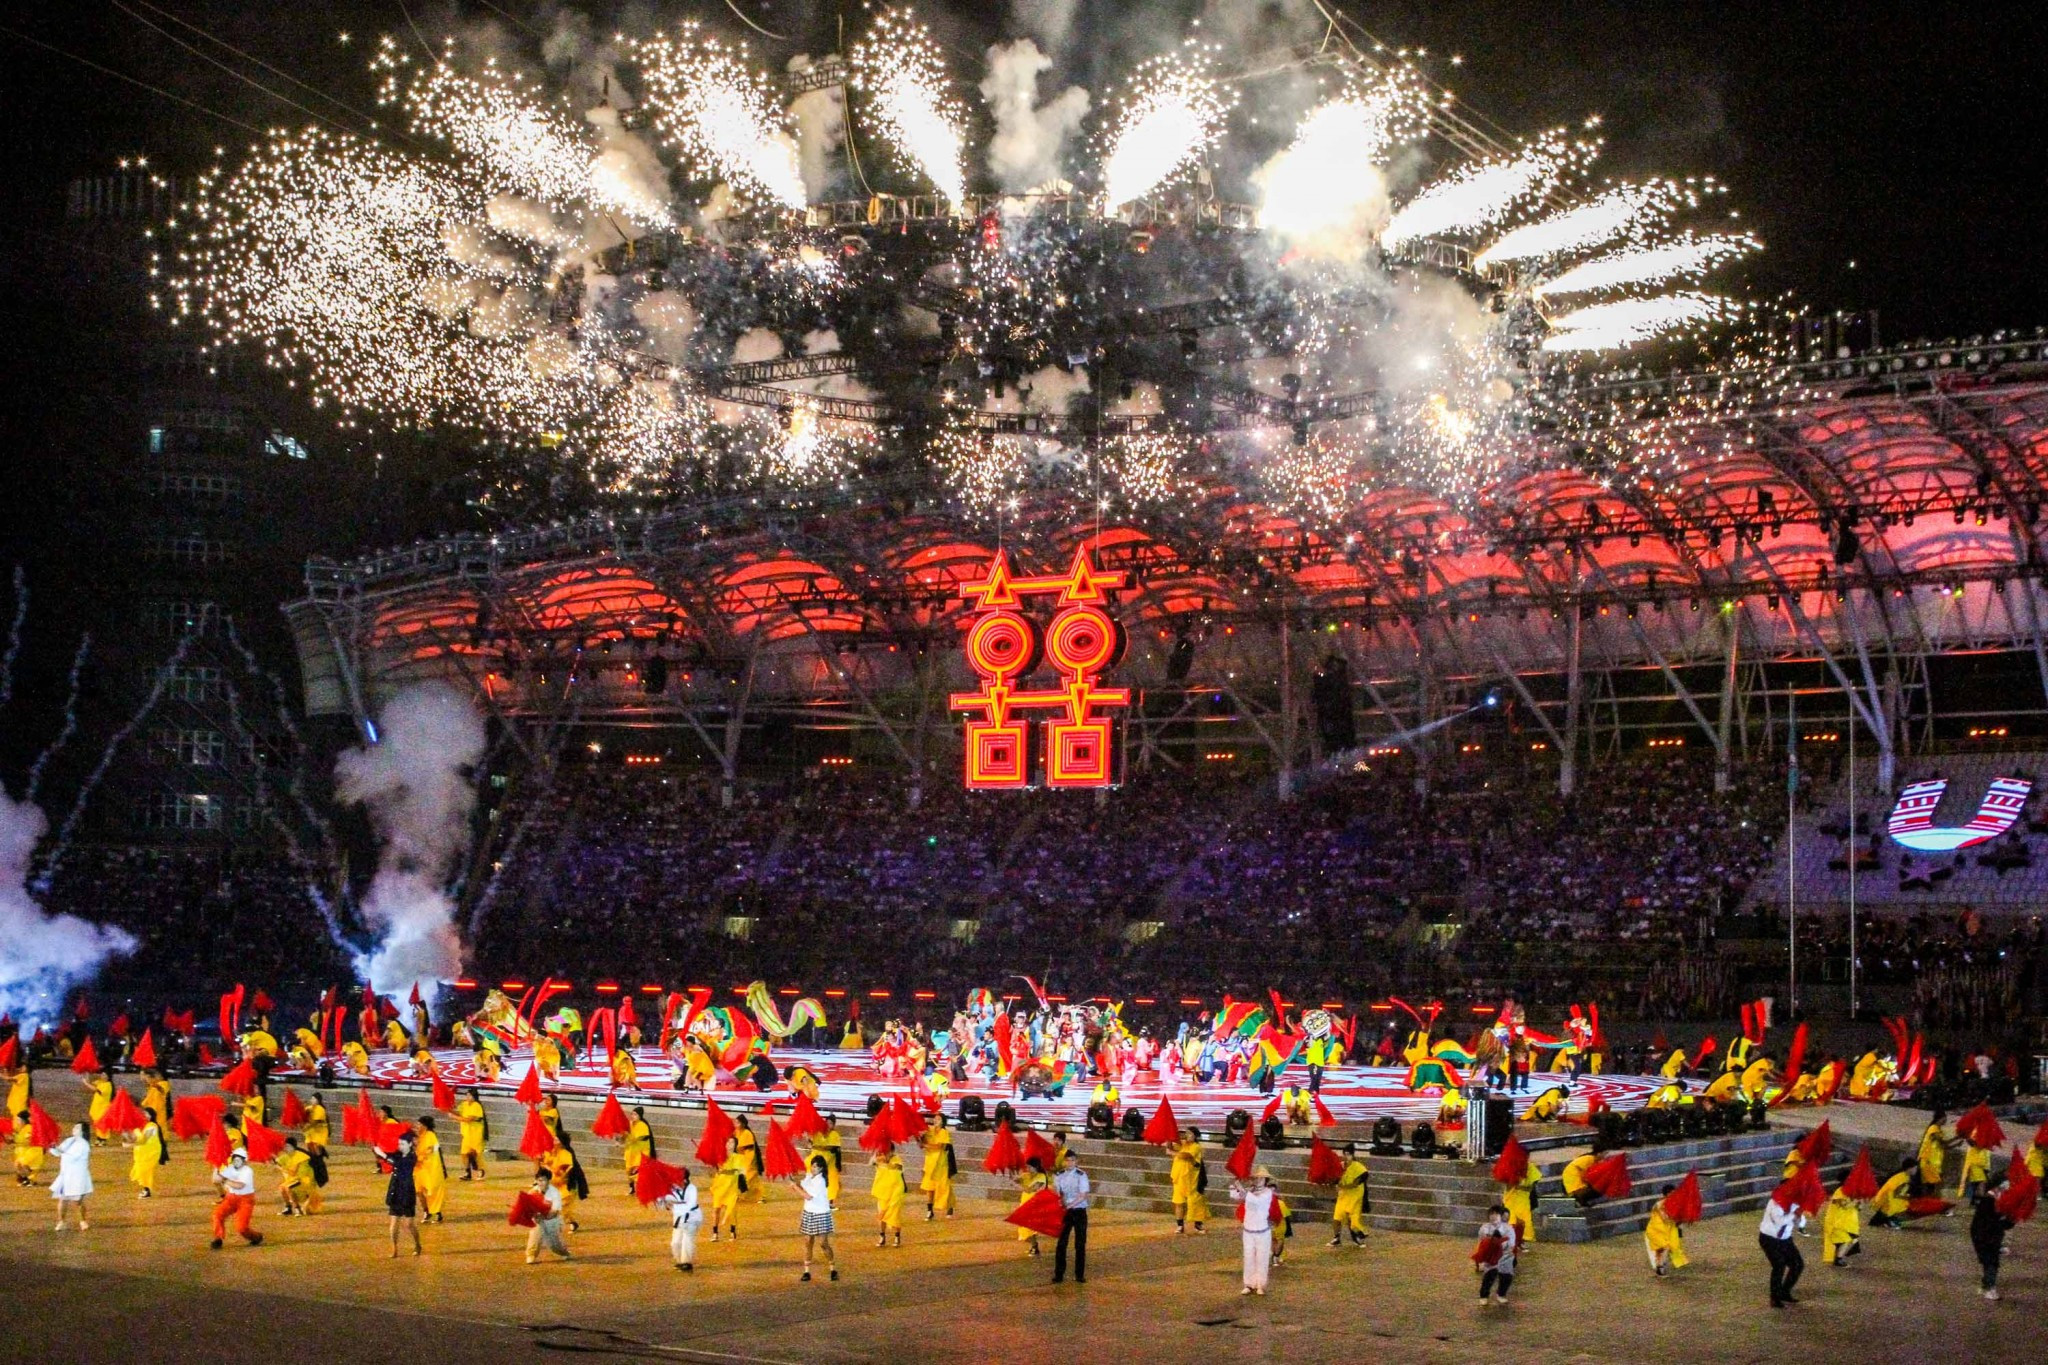 Taipei 2017 was officially declared open this evening ©Taipei 2017